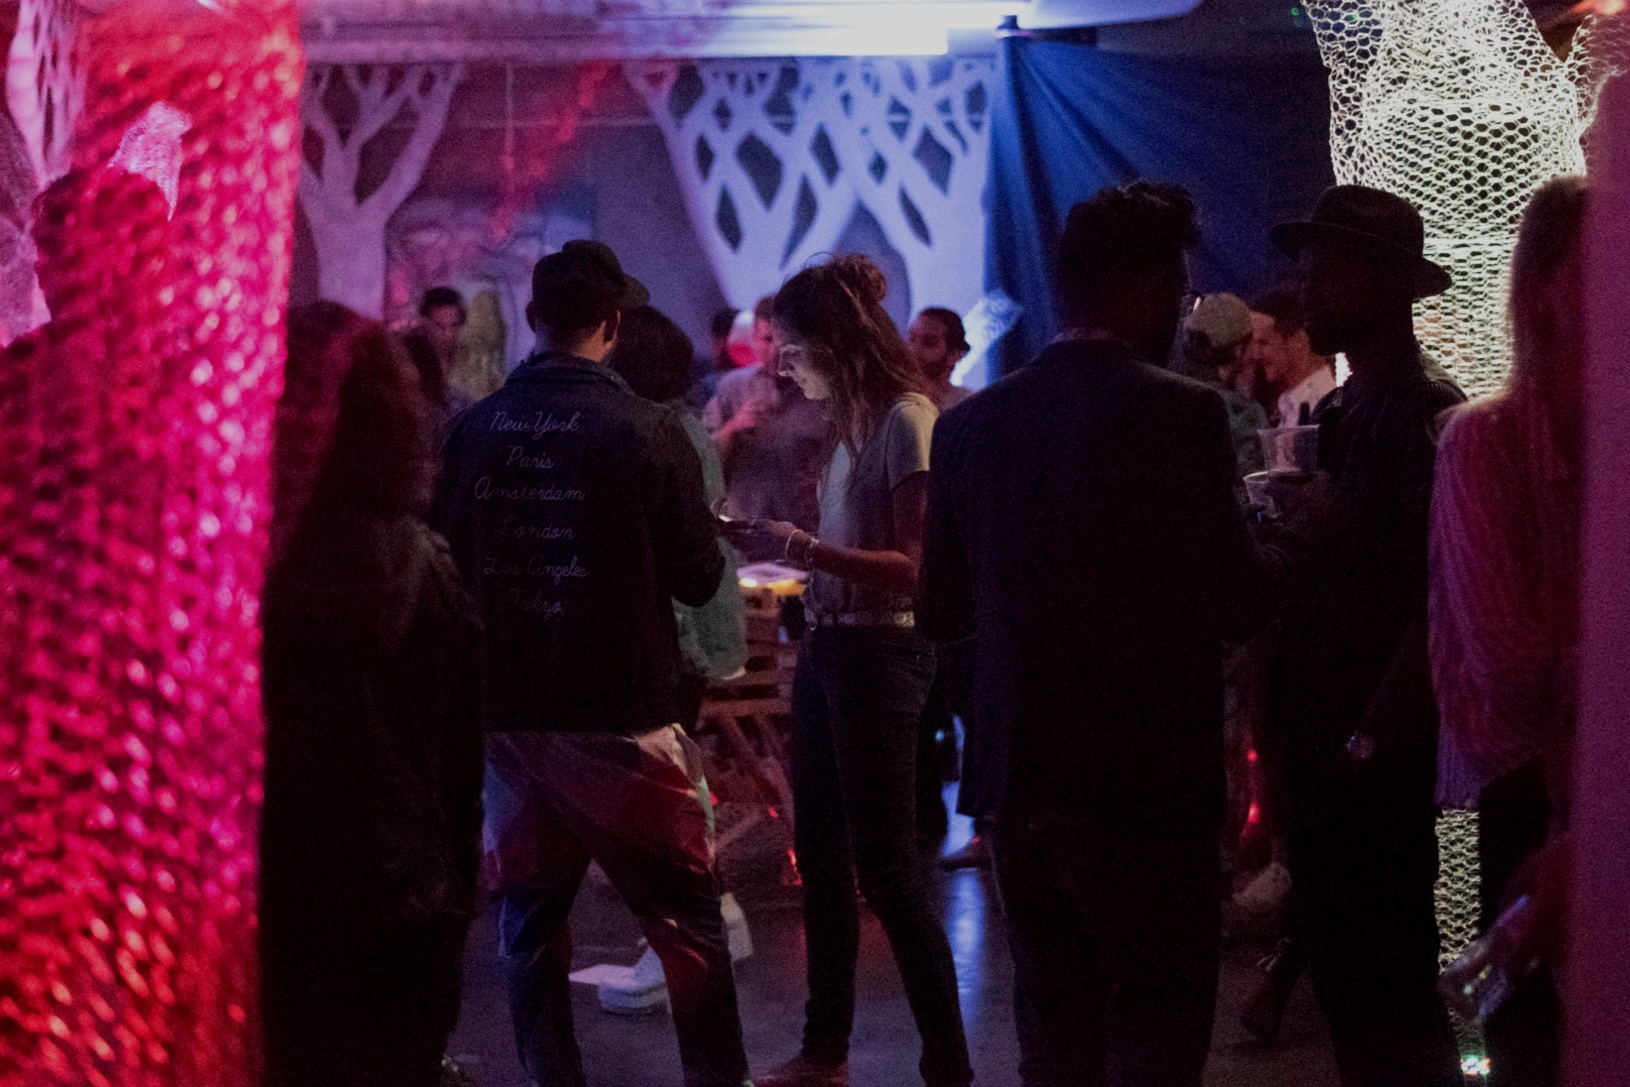 I designed an immersive experience for 200+ people in SF with the Anywhere Collective. -